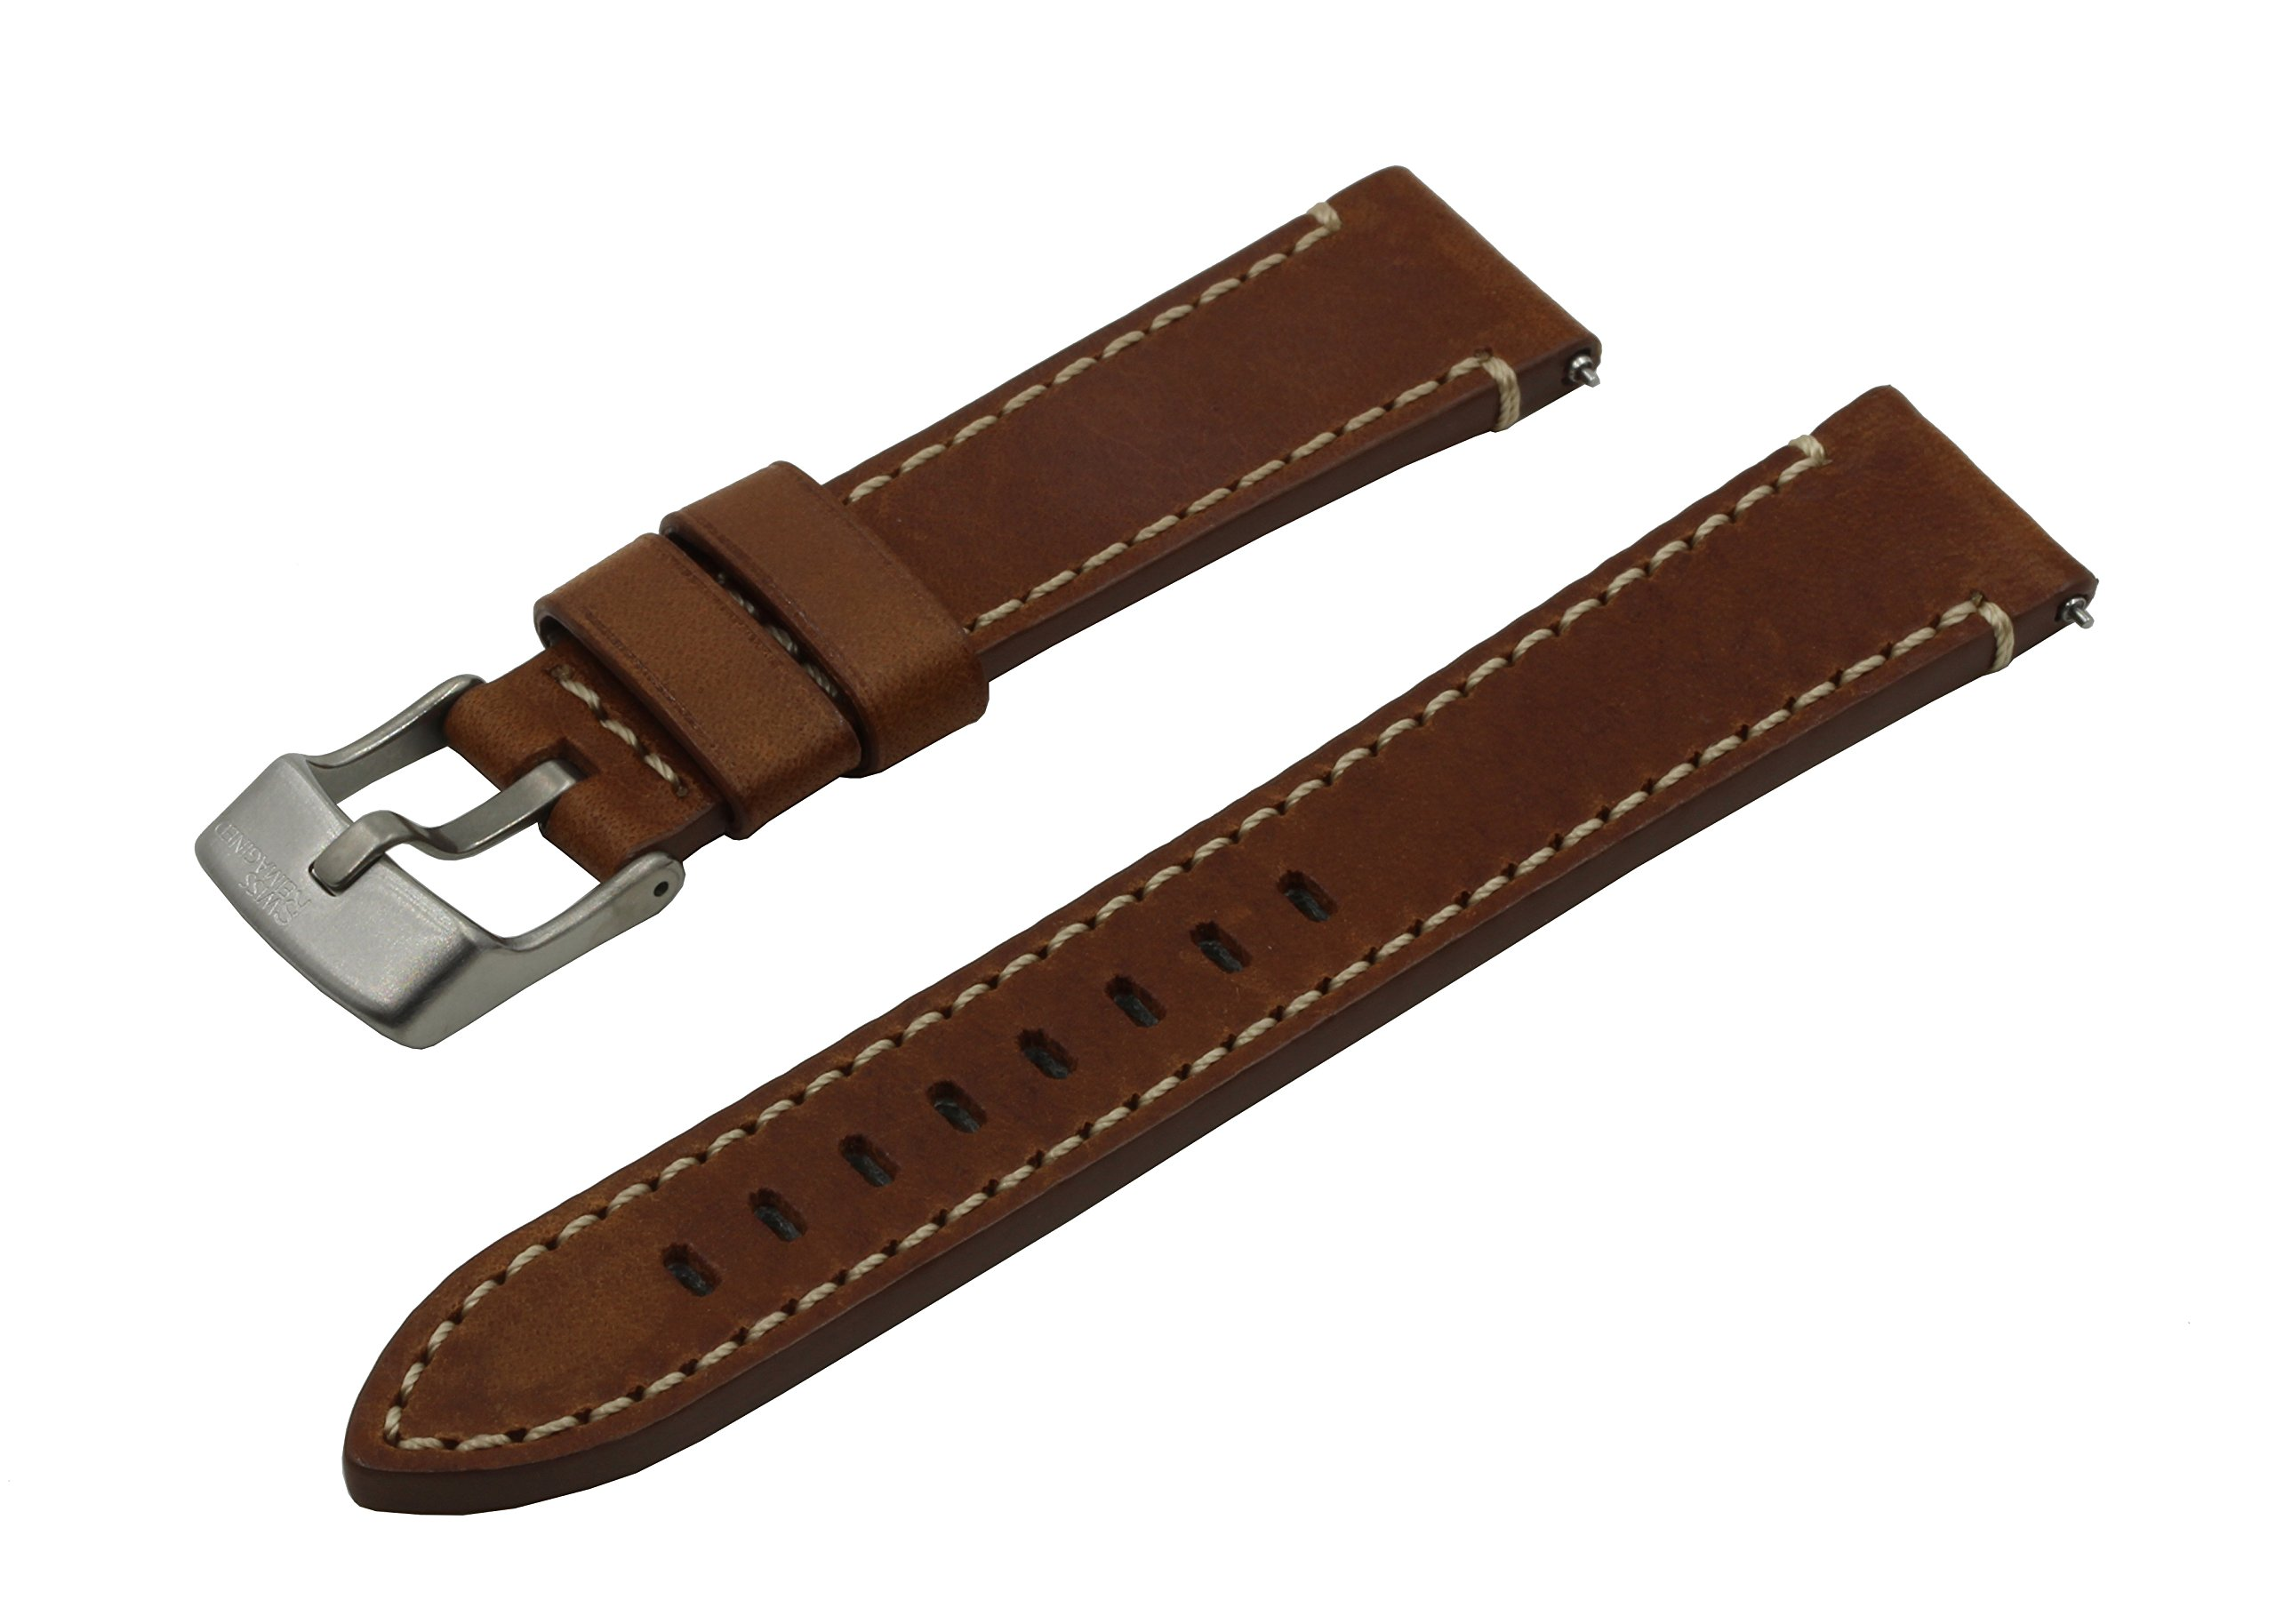 SWISS REIMAGINED 5 Colors Quick Release Quality Genuine Leather Hypoallergenic Watch Band Strap - Choice of Width - 17mm, 18mm, 19mm, 20mm, 21mm, 22mm or 24mm (Choose Size) - Cognac